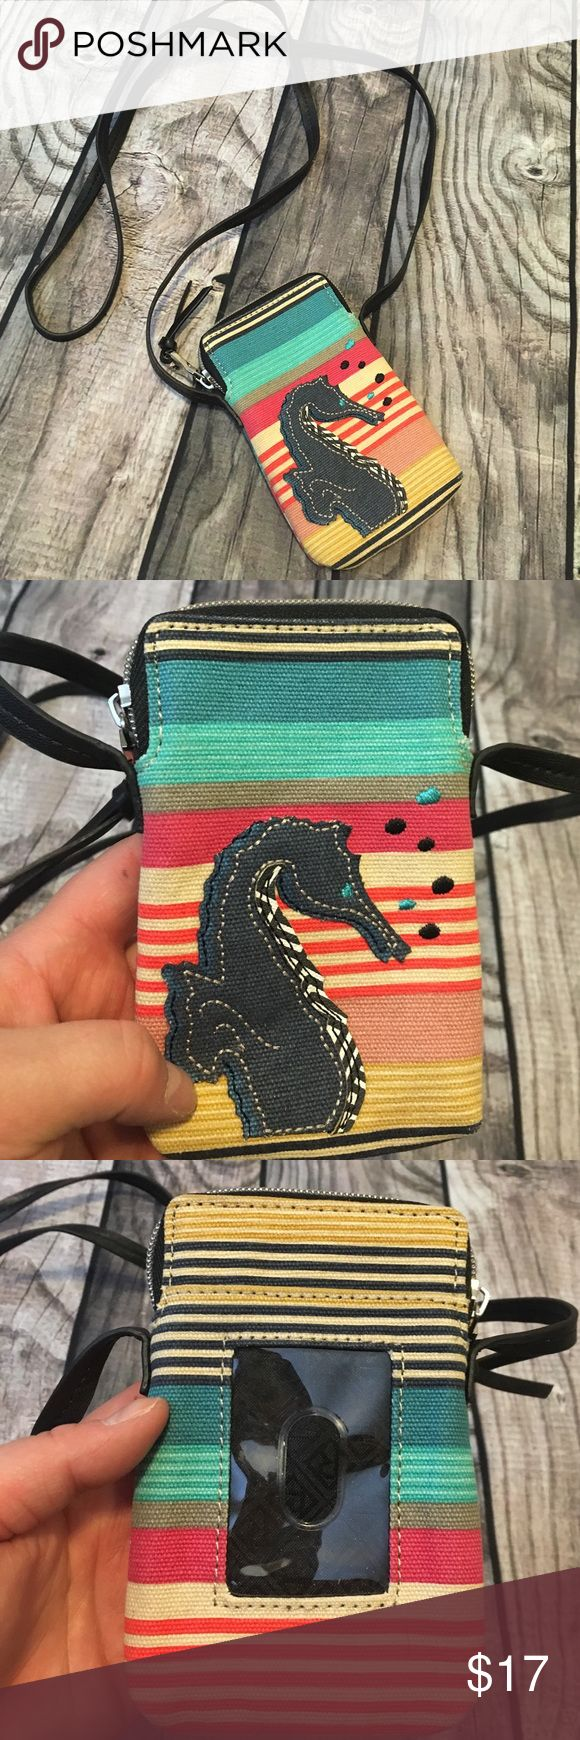 ✅NWOT✅ relic seahorse day trip bag Brand new without tags! Small seahorse striped shoulder bag/ Crossbody.  Big enough to fit an iPhone 6 (NOT PLUS) and some cards/ cash. Relic Bags Crossbody Bags